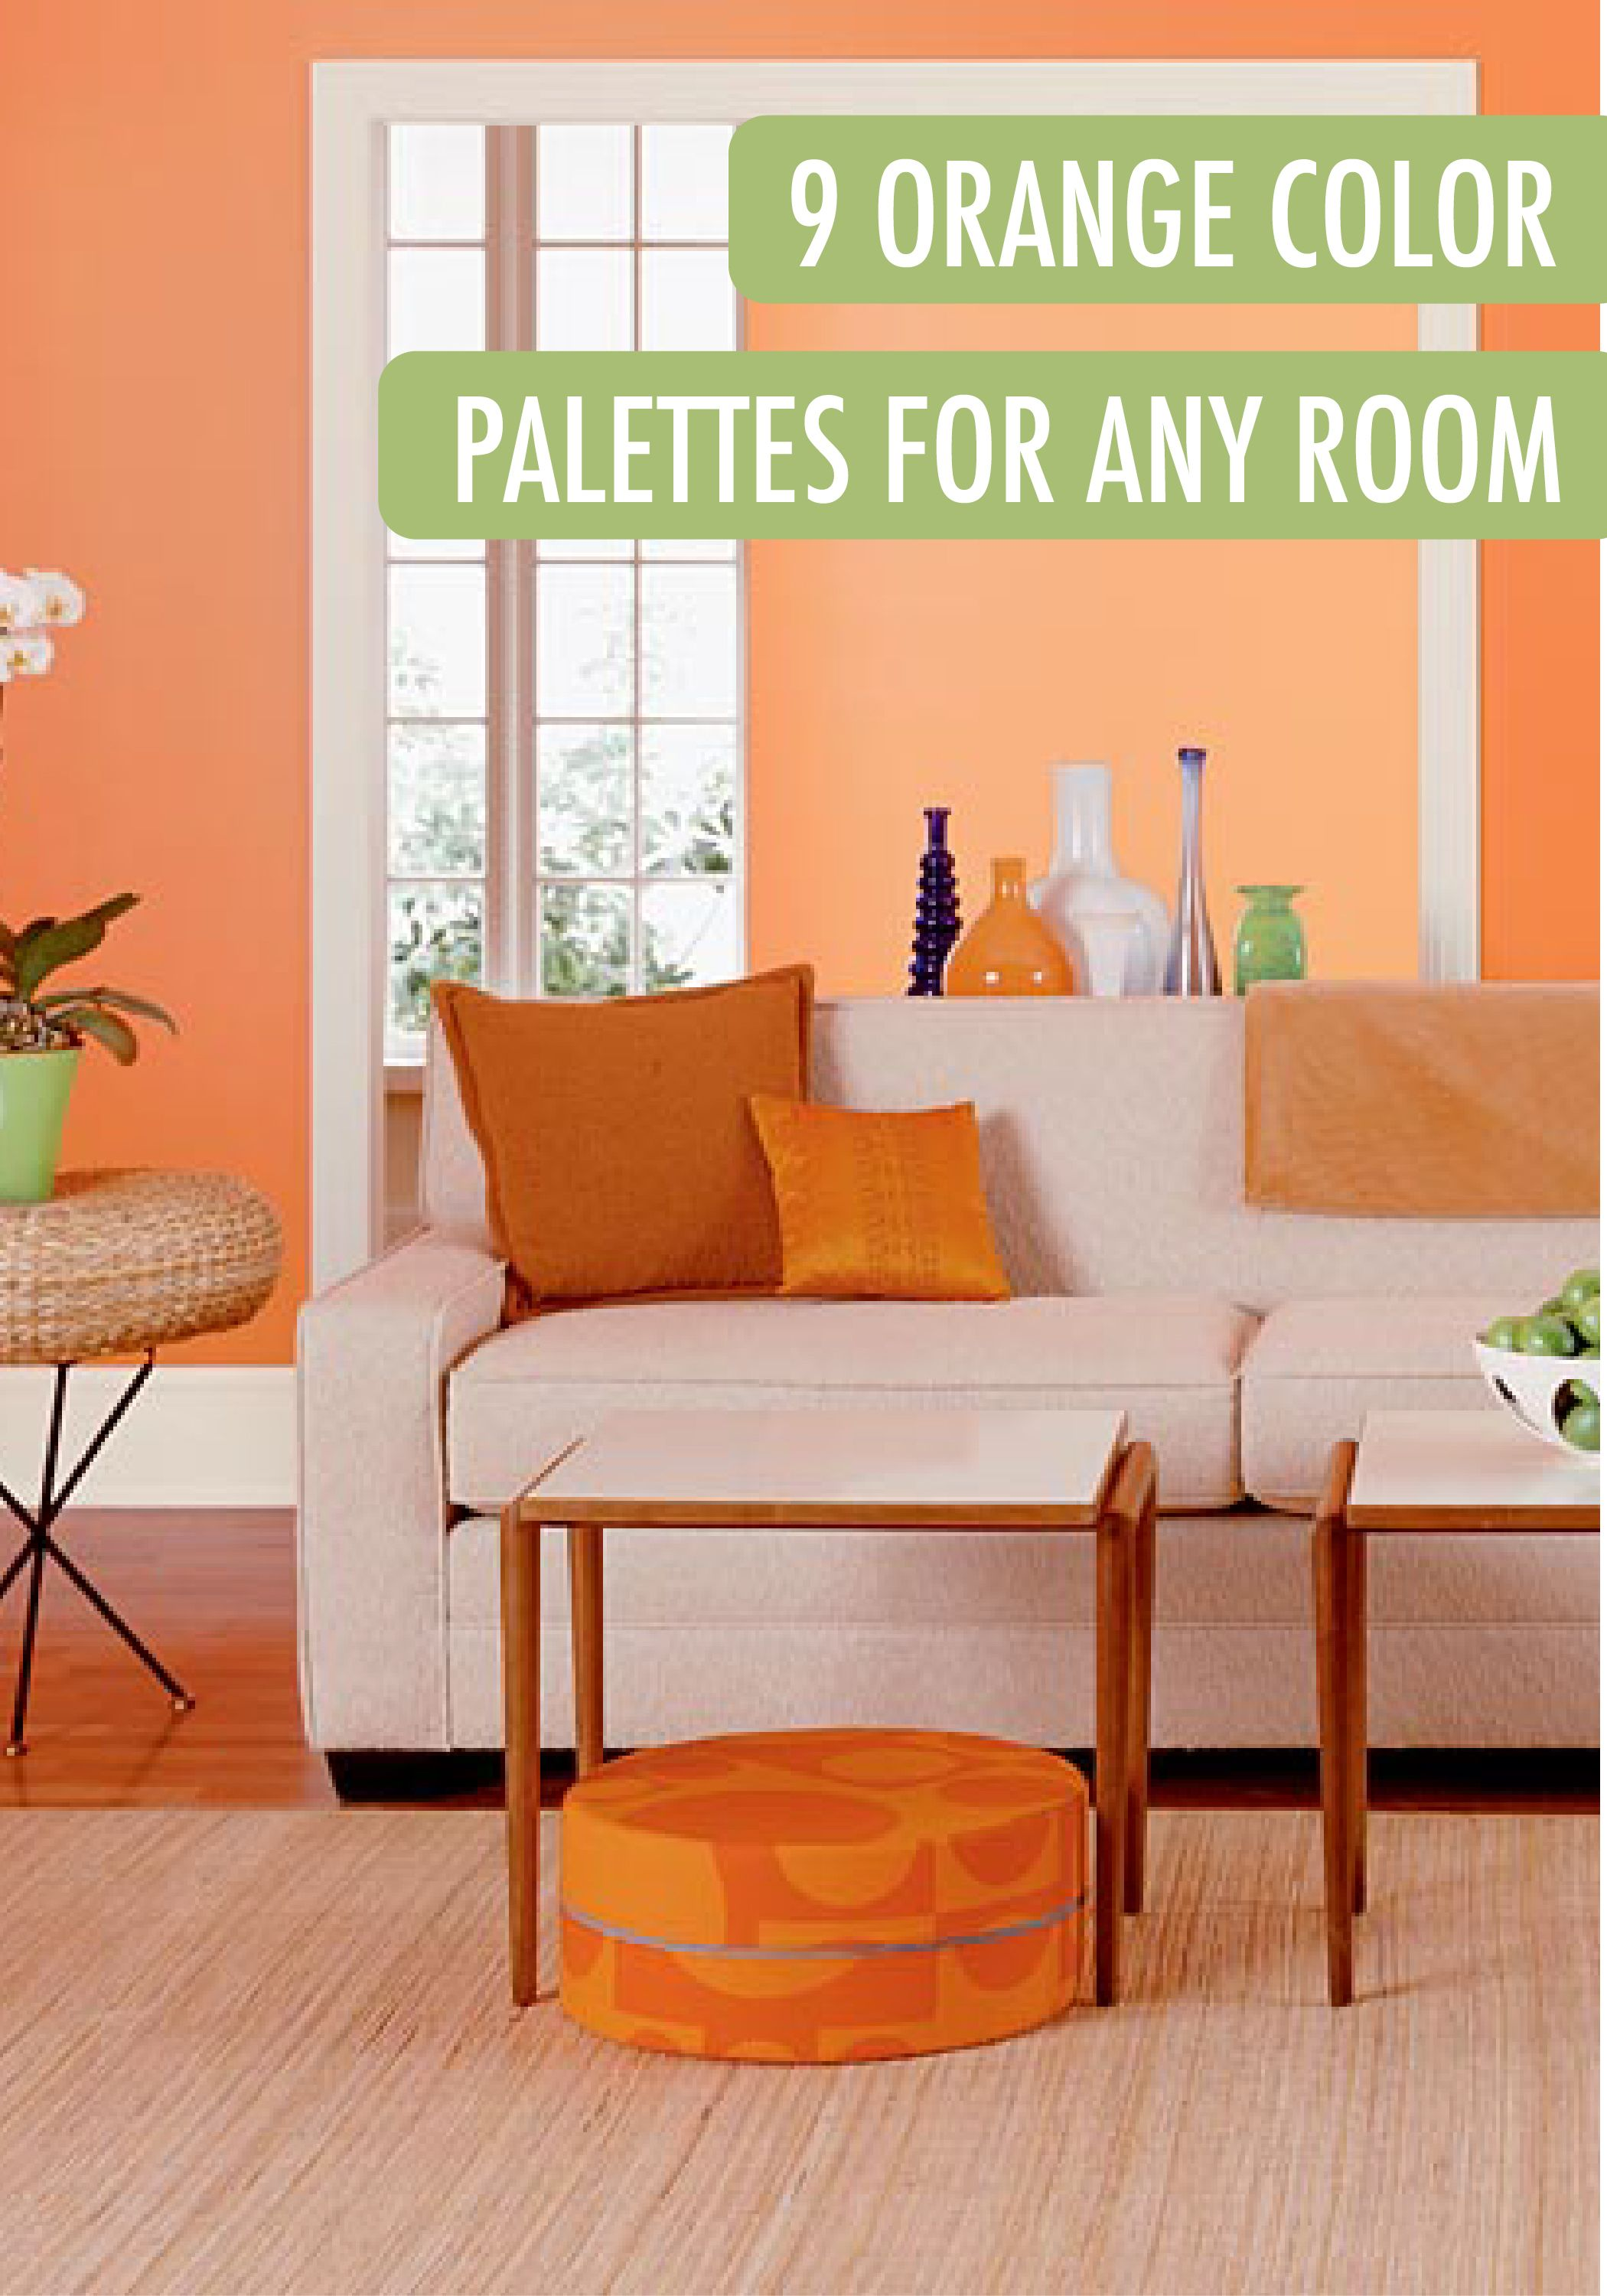 Make your home your own by adding a vibrant shade of BEHR paint to